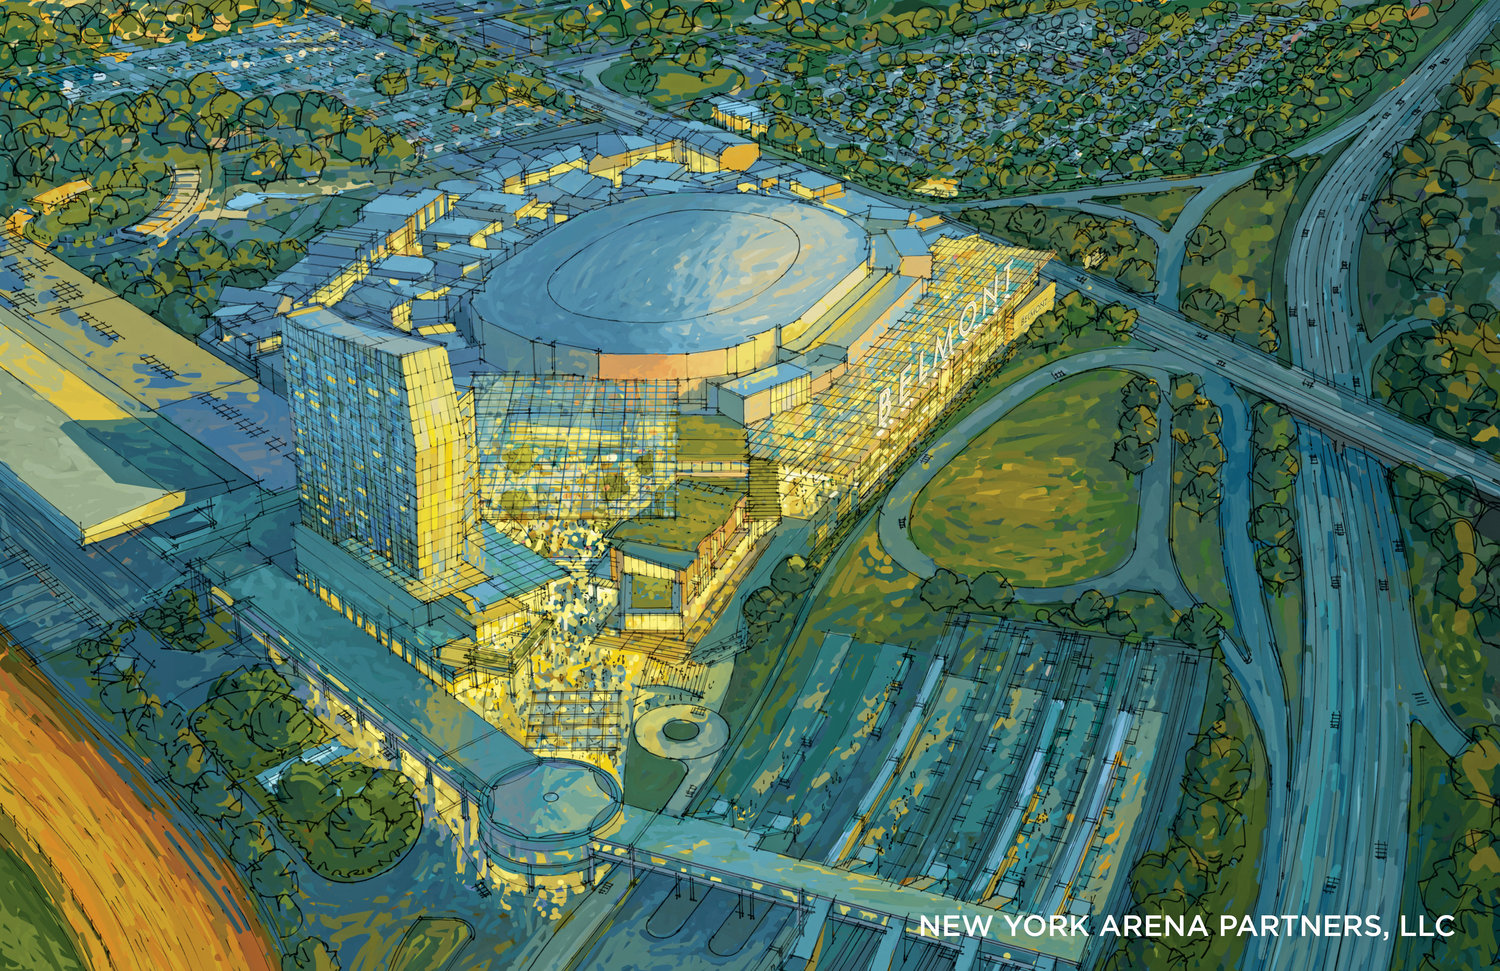 The plans for Belmont Park's redevelopment include a 19,000-seat arena for the New York Islander's National Hockey League Team, a 250-room hotel, a community center, commercial office space and 350,000 square feet of retail space